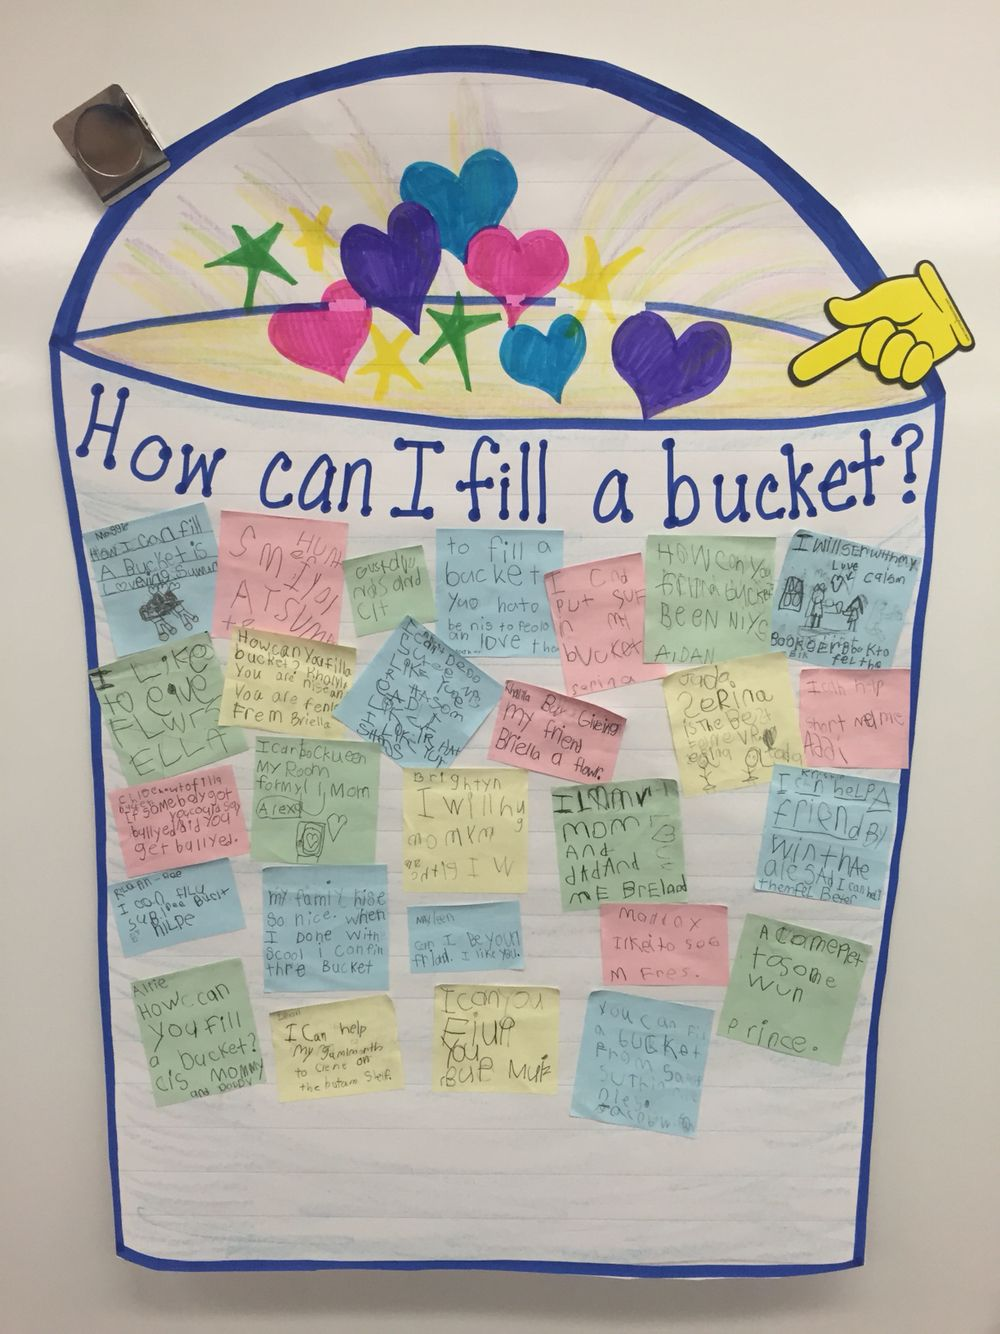 'How can I fill a bucket?' anchor chart by source unknown